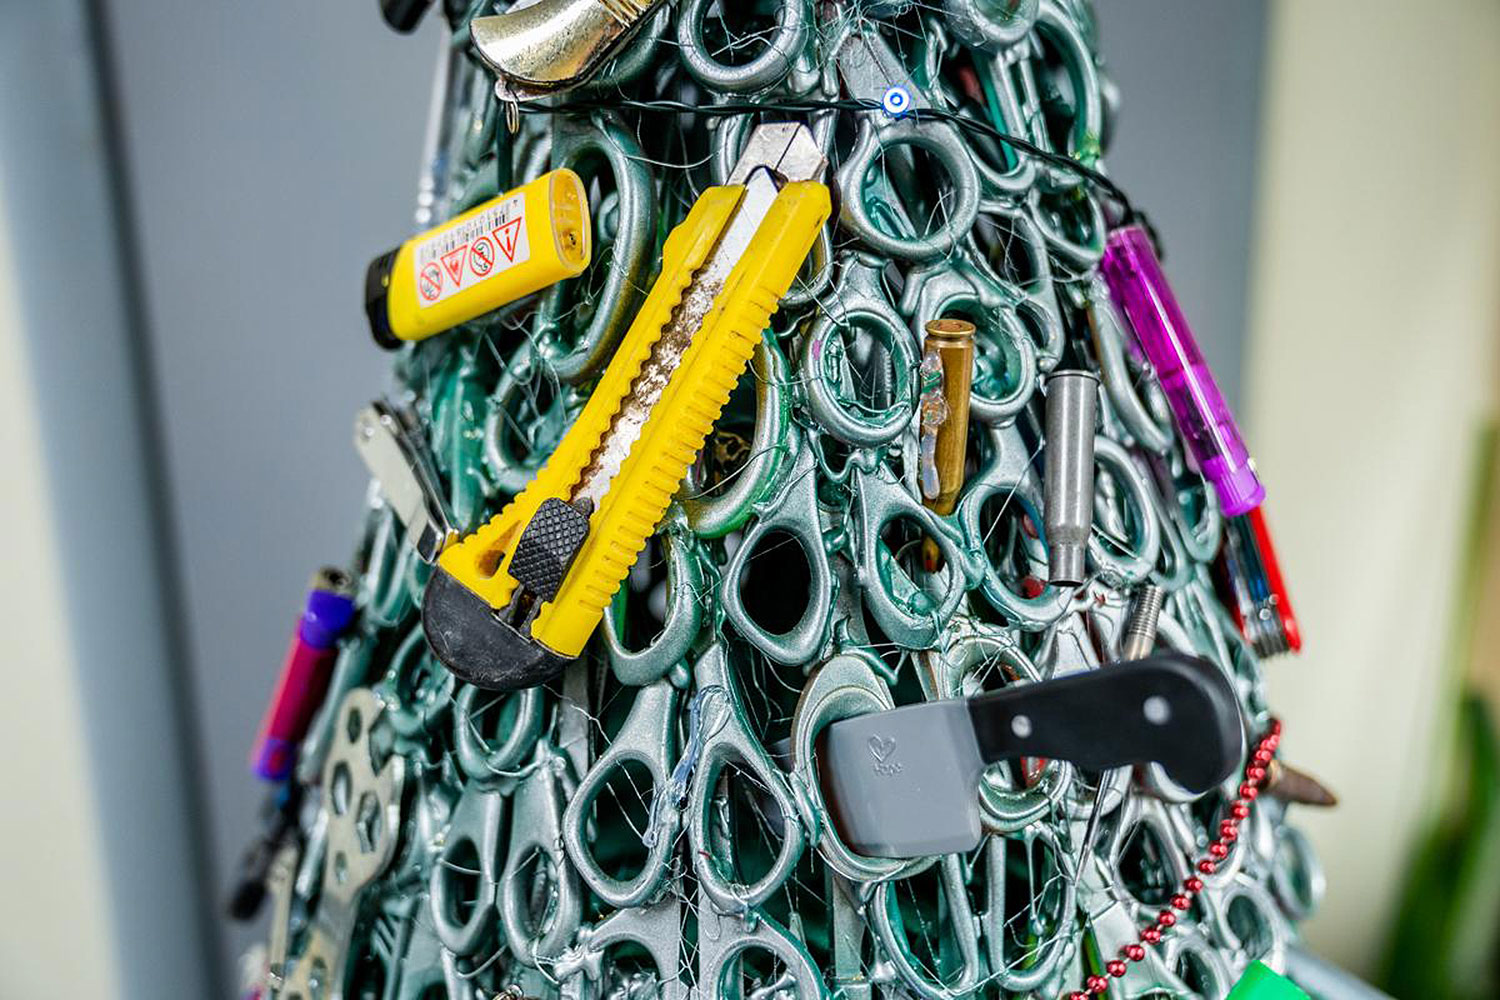 Airport Christmas Tree Made of Confiscated Items